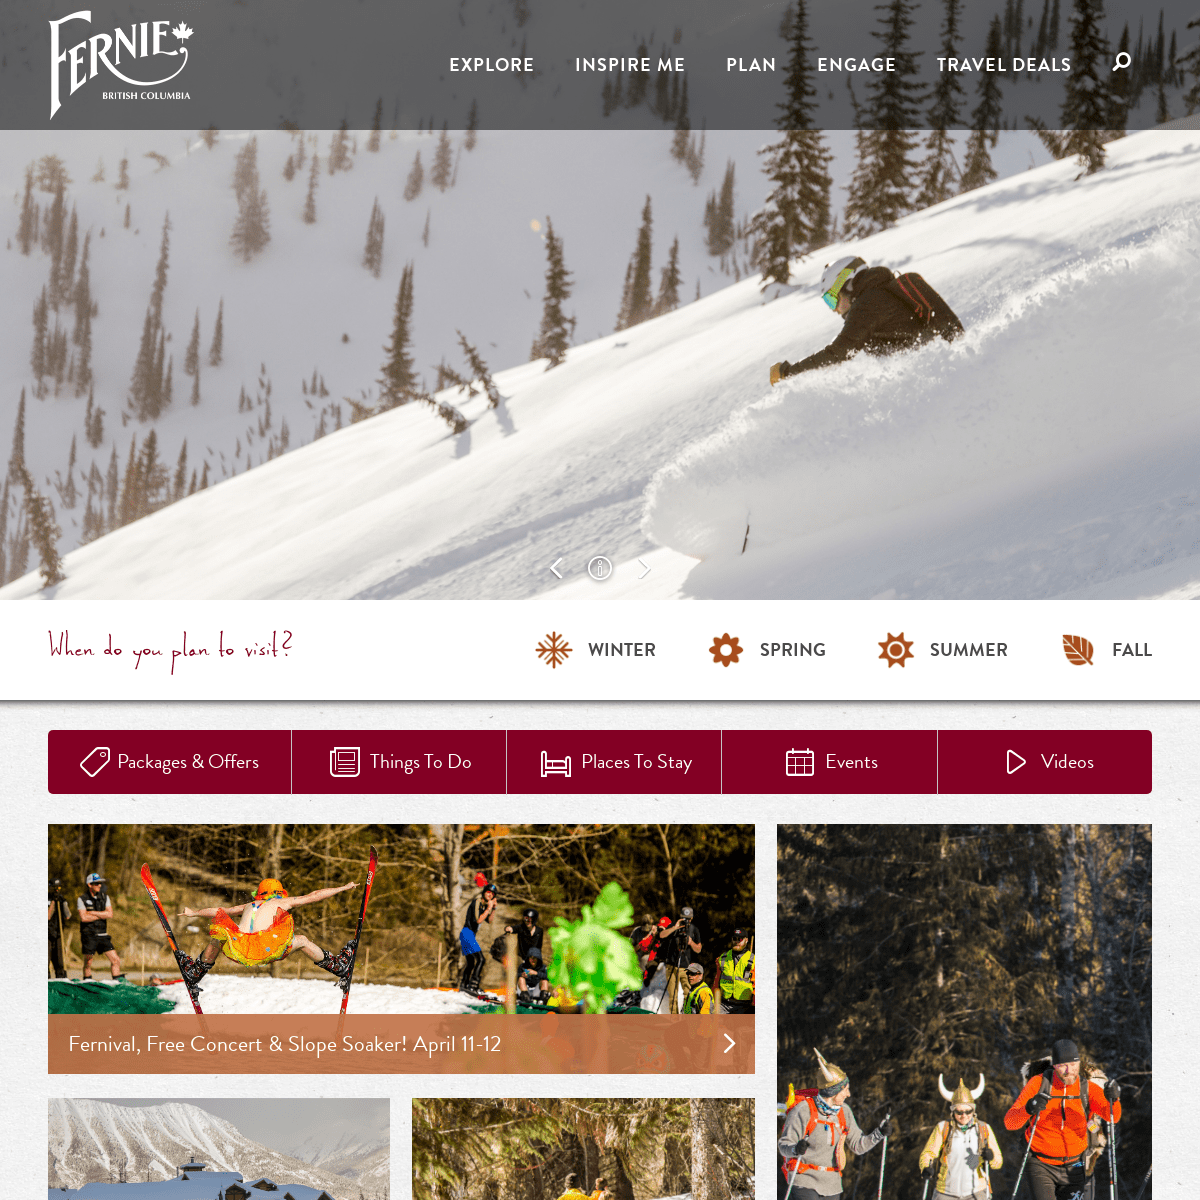 Official community travel website for Fernie, British Columbia, Canada